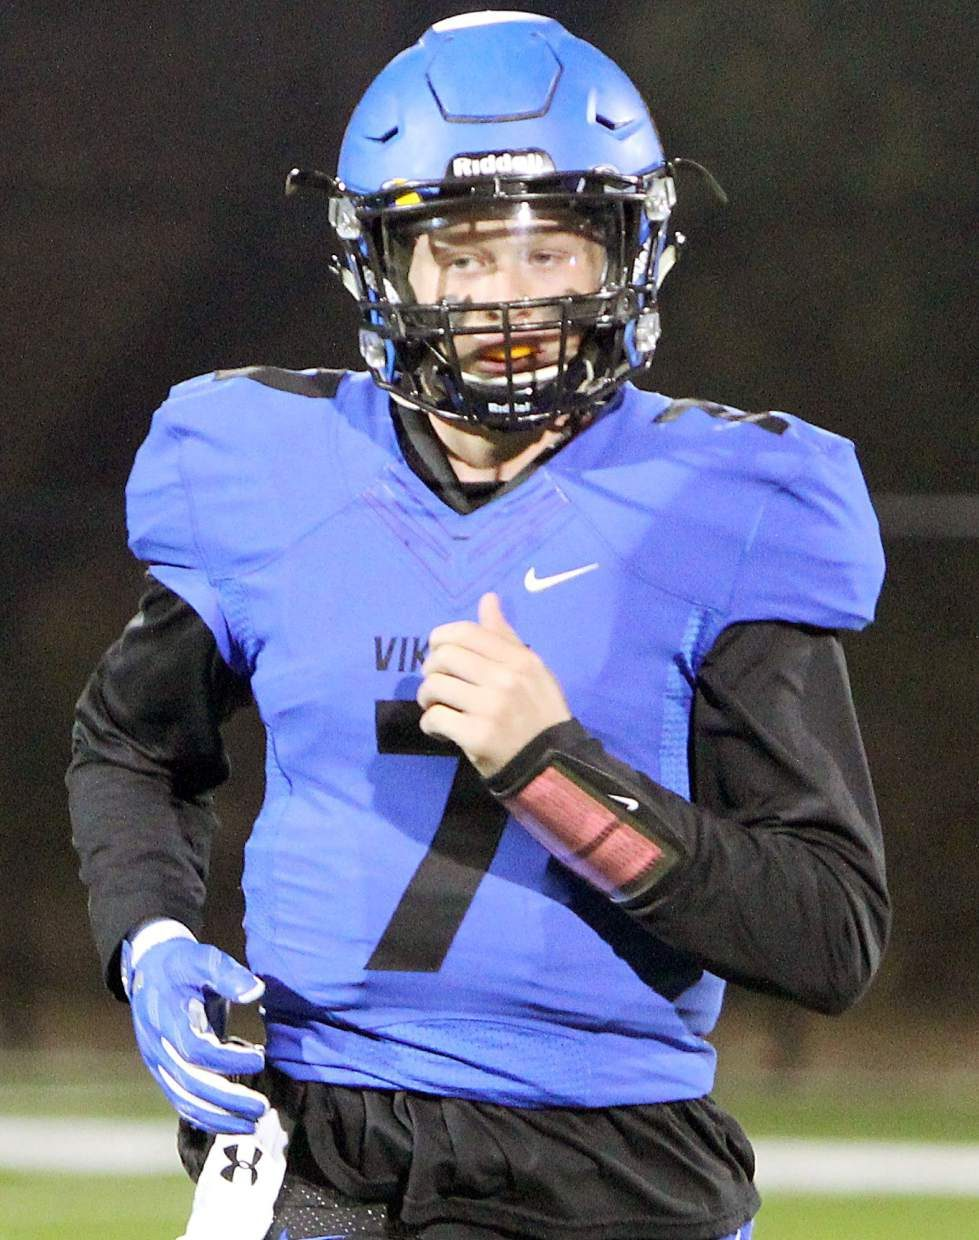 Vikings senior Tommy Cefalu threw for five touchdowns Friday in his first home start of the season.